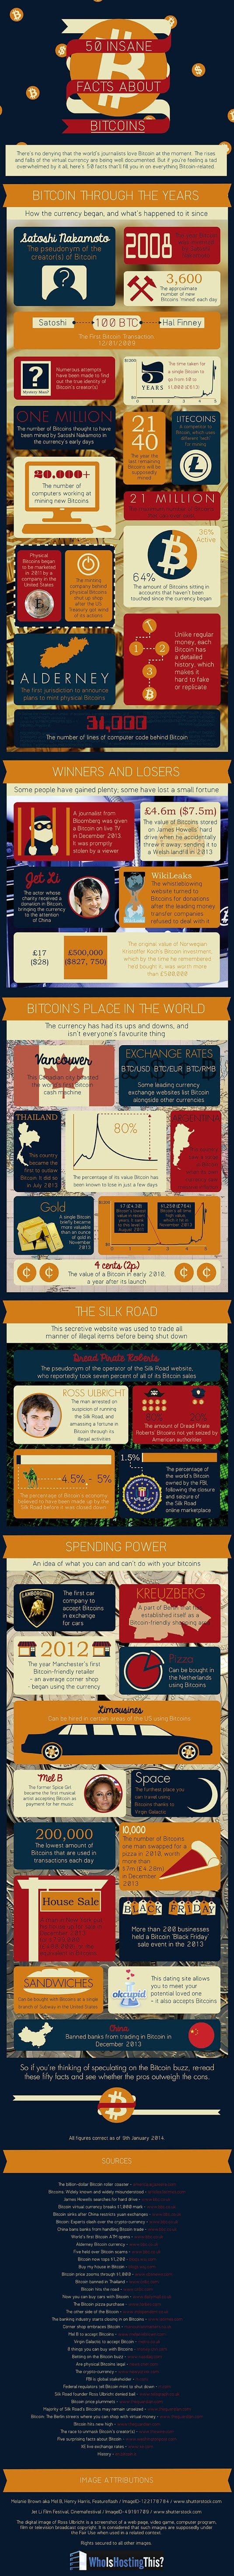 50 Insane Facts About Bitcoin #infographic